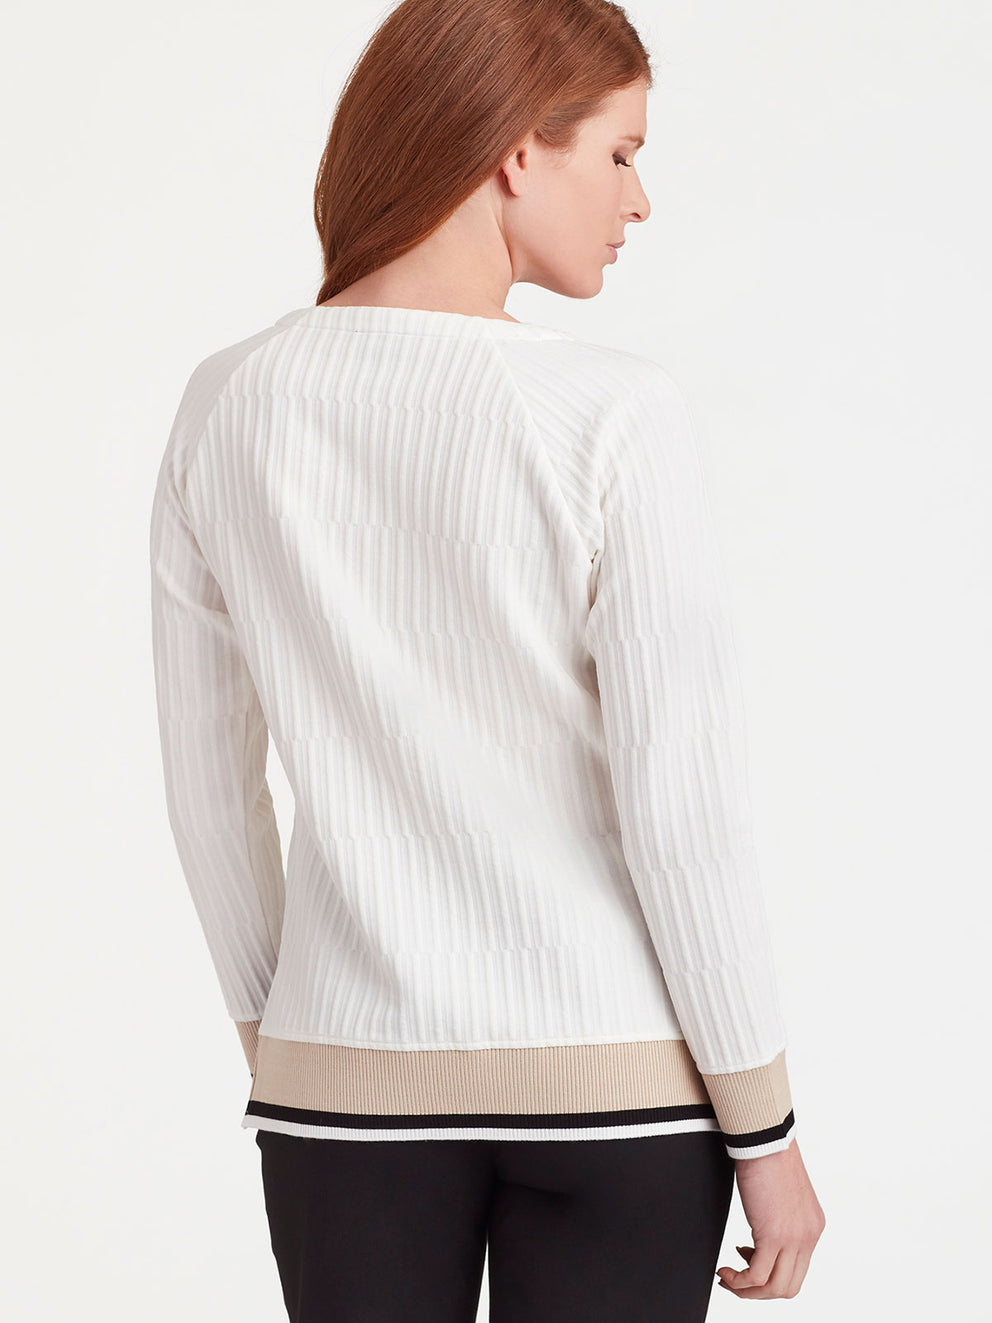 The Jones New York Textured Knit Pullover in color Ivory - Image Position 3